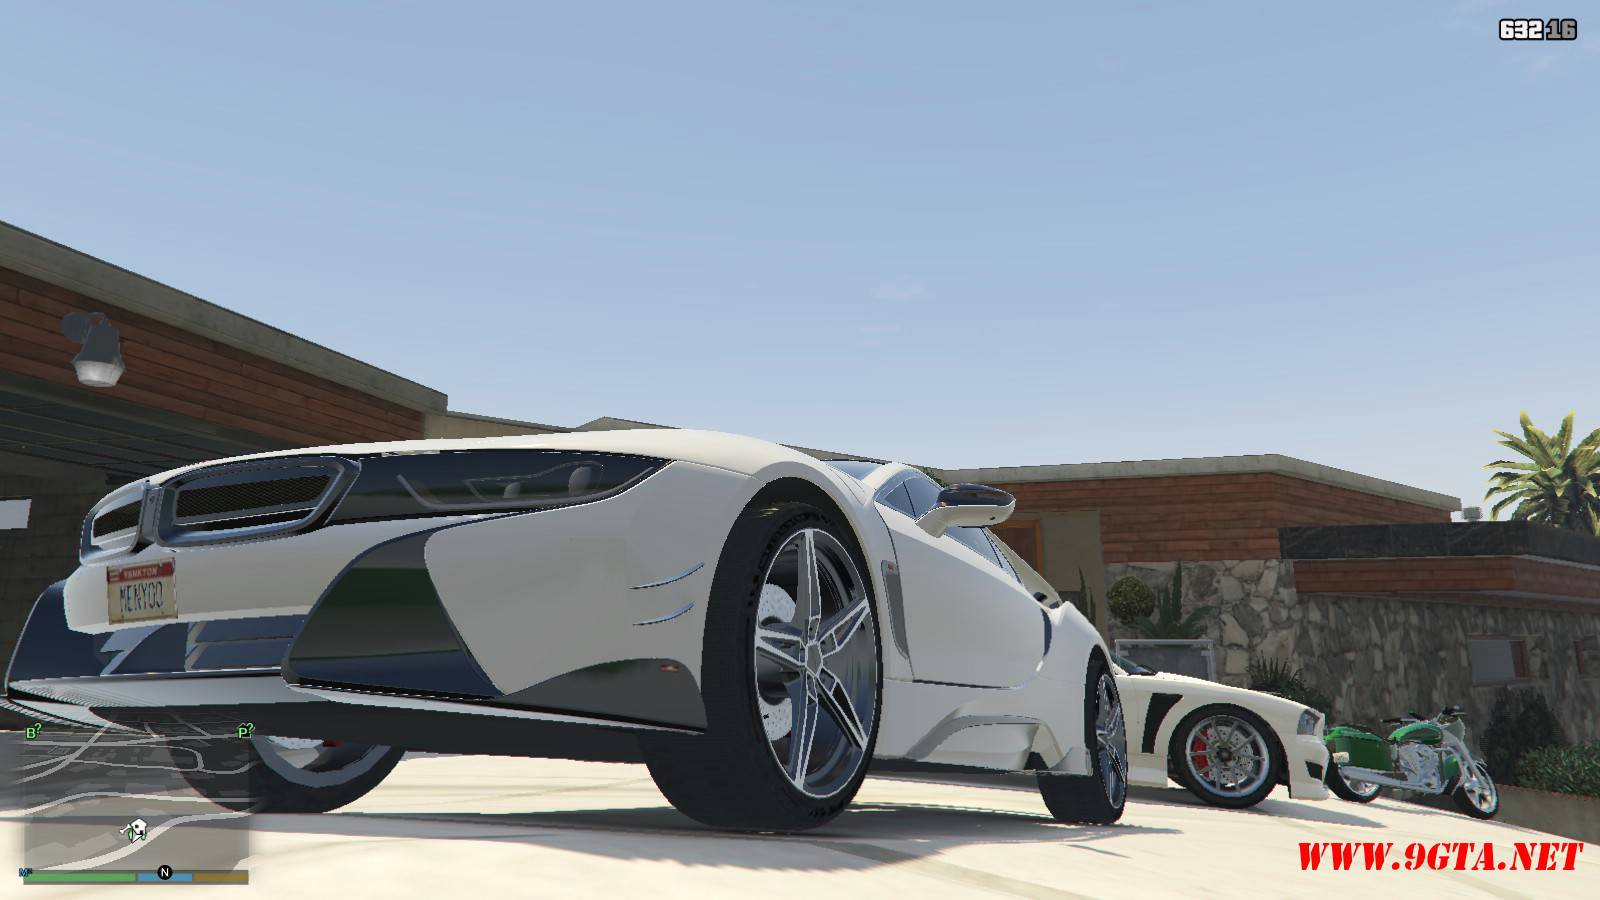 BMW i8 AC Schinitzer ACS8 Mod For GTA5 (3)